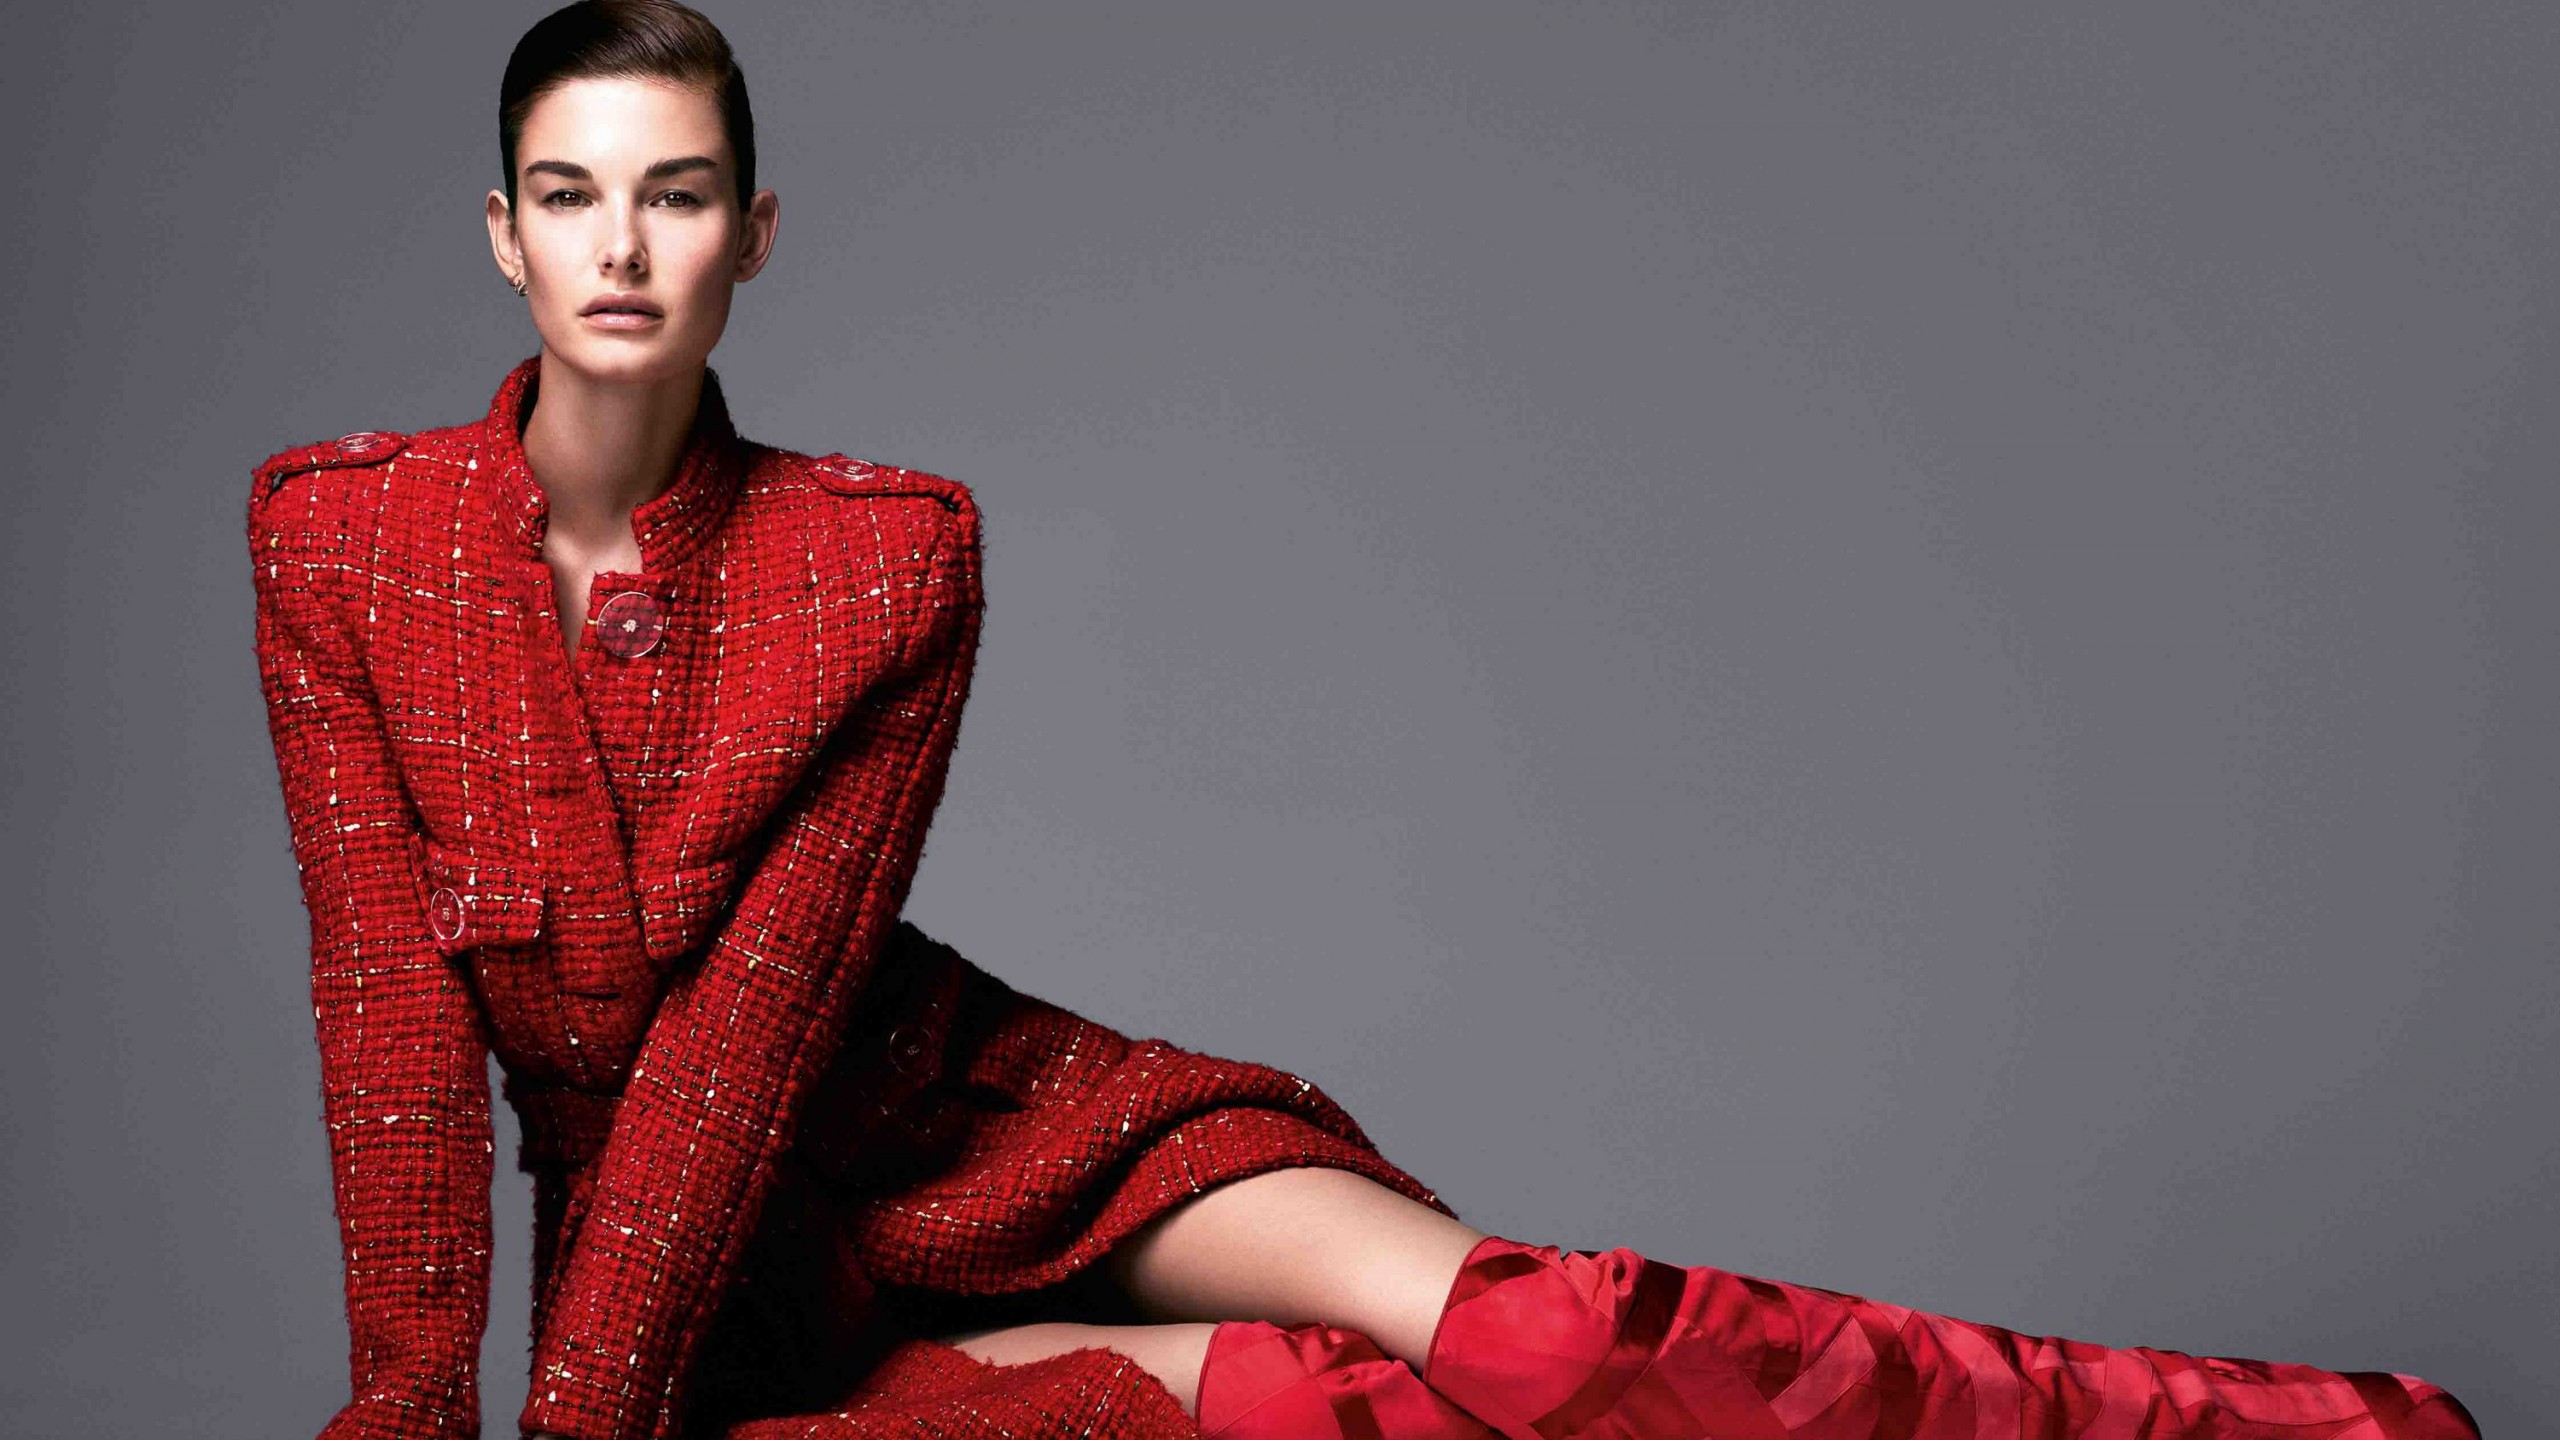 cleavage Celebrites Ophelie Guillermand naked photo 2017